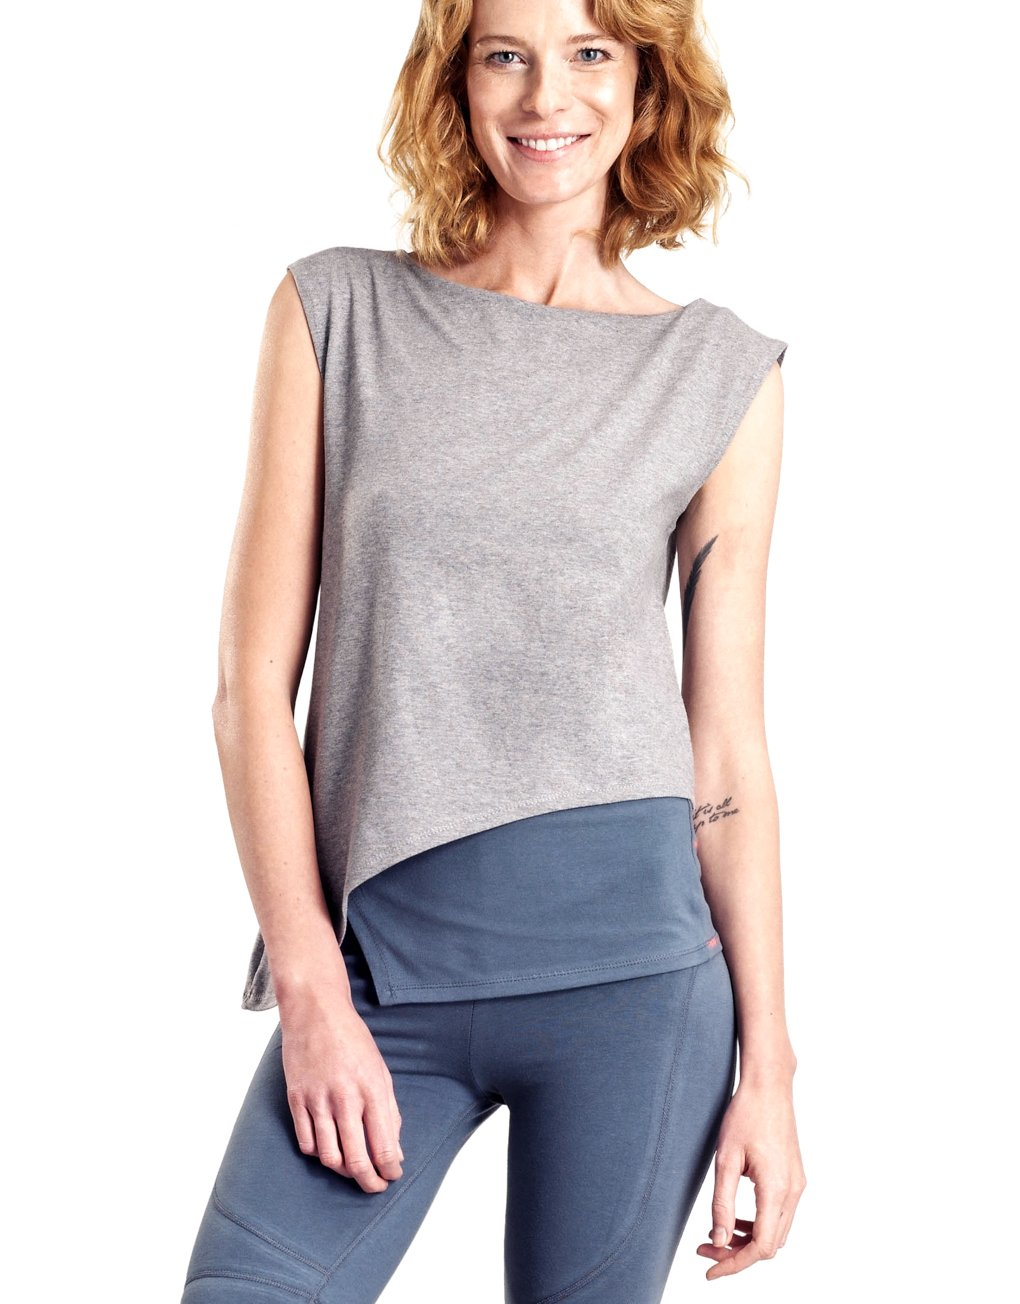 Undercover Asymmetric Top